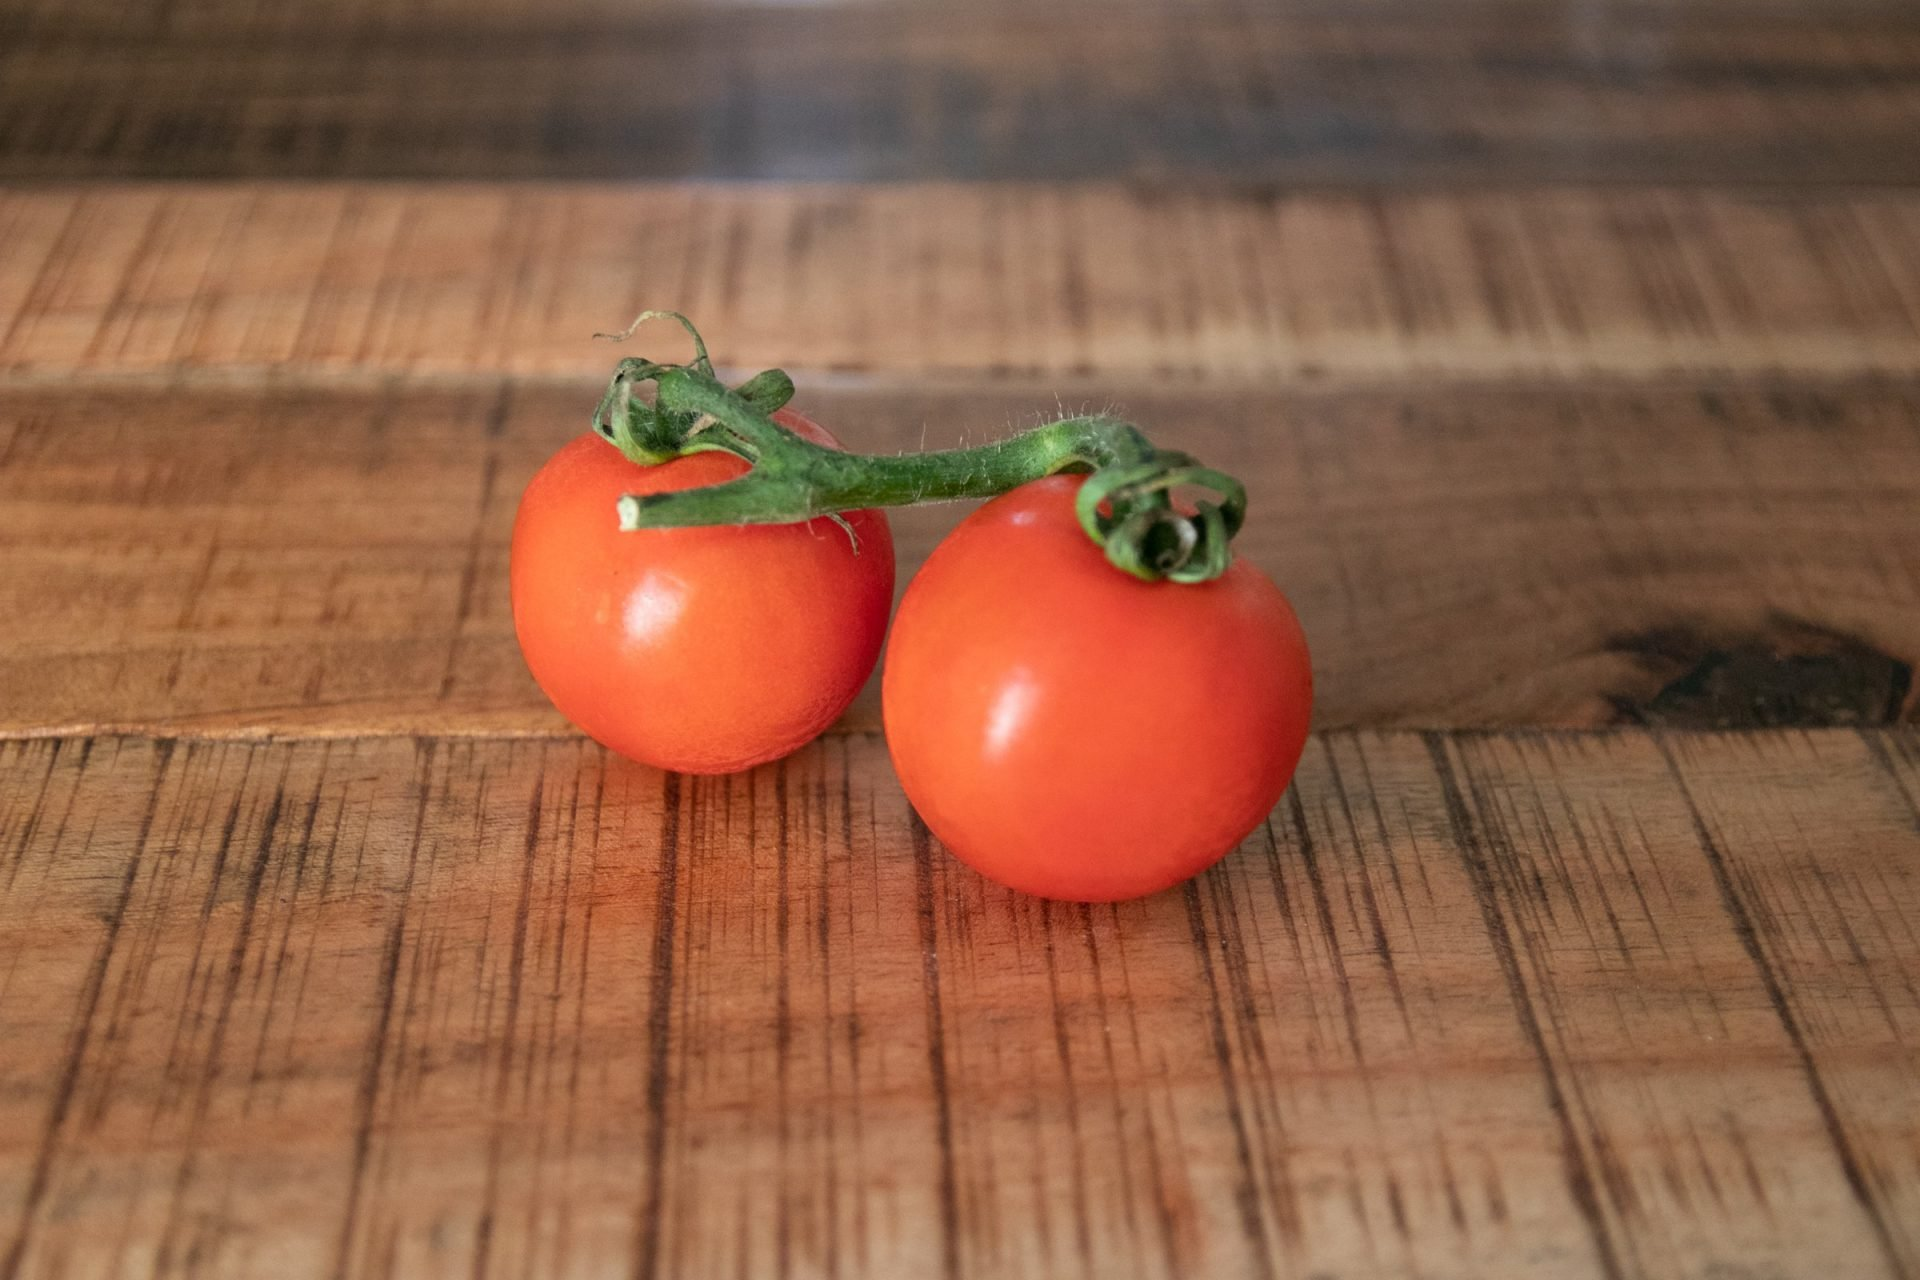 Two Tomatoes On Wooden Surface